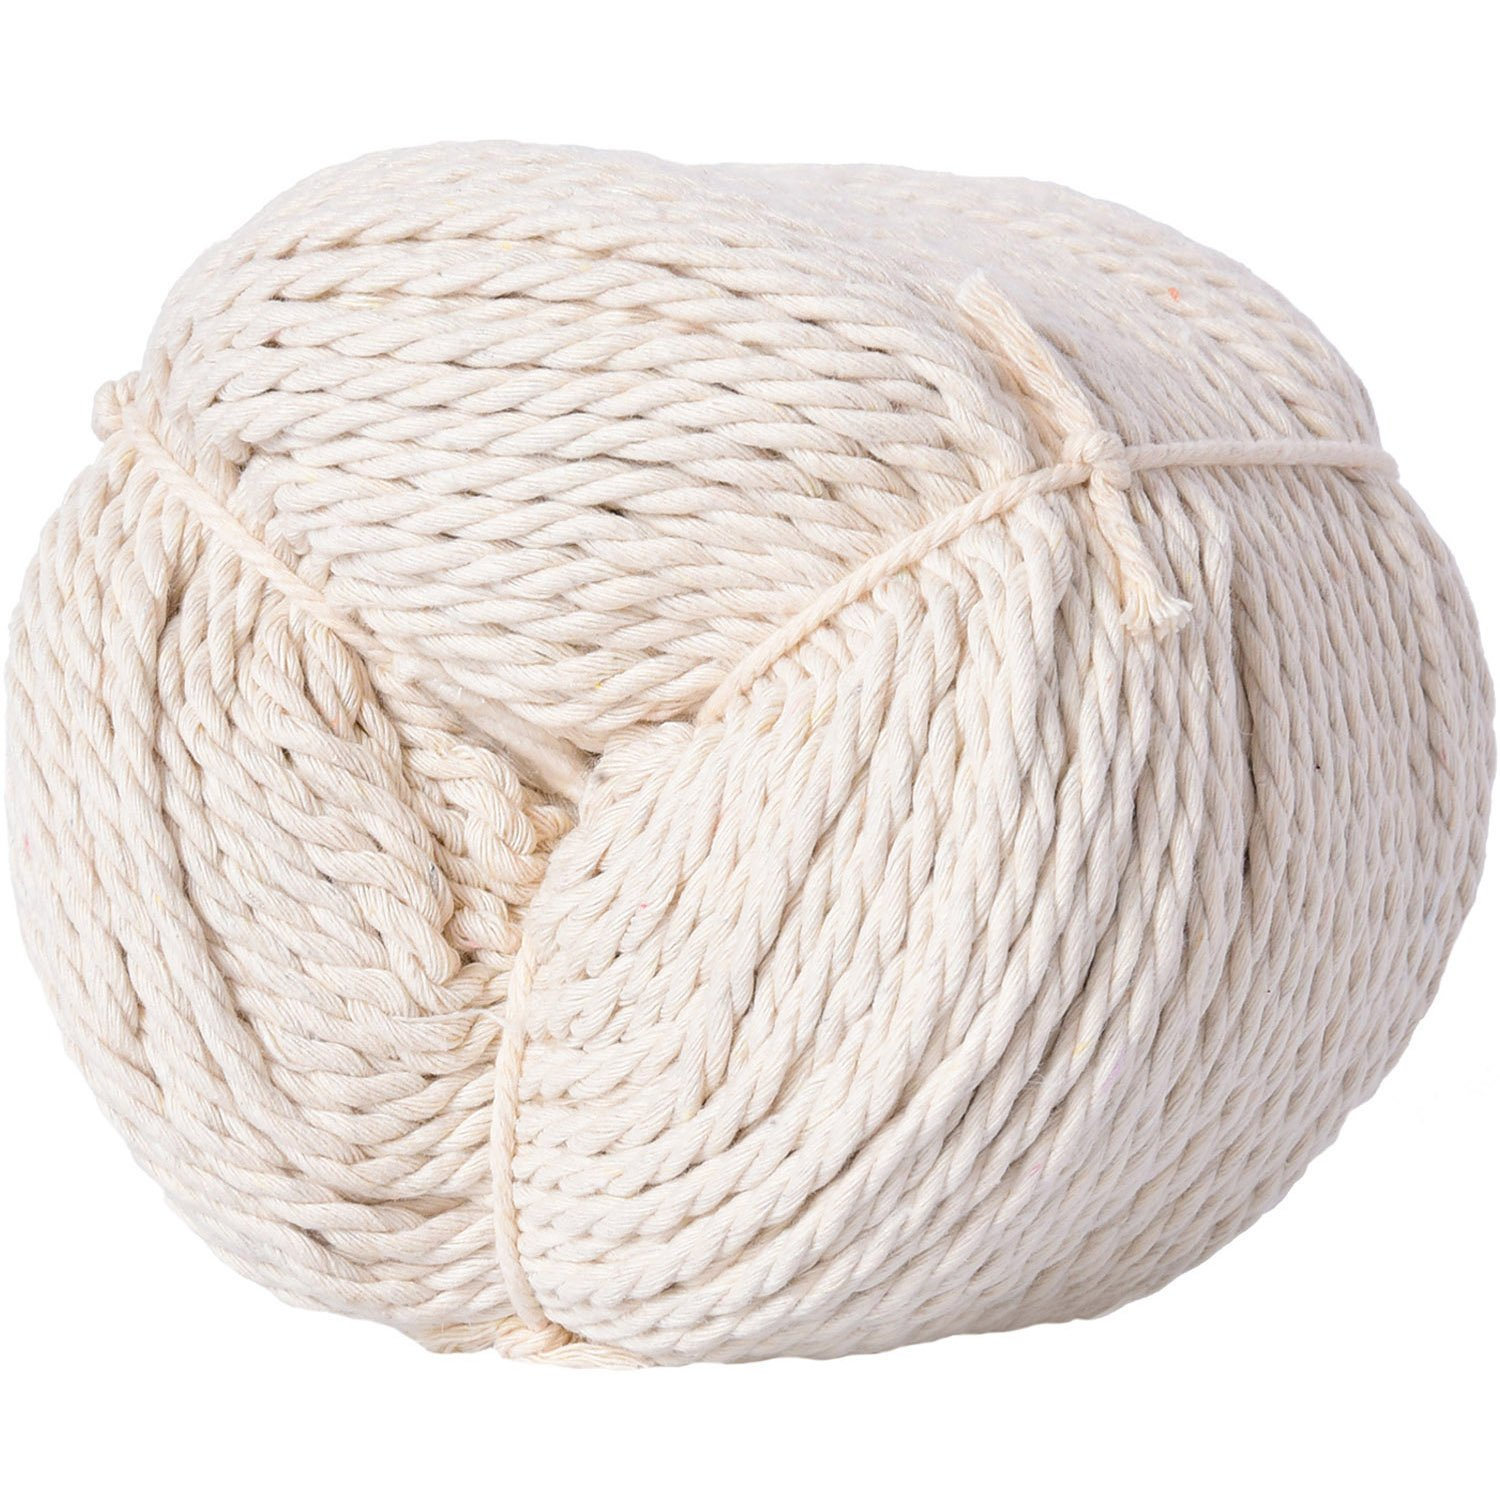 Pangda Cotton Macrame Cord Twine, Craft Rope Yarn for DIY Plant Hanger Wall Hanging Decoration, Natural Color (150 m Long, 4 mm Diameter)